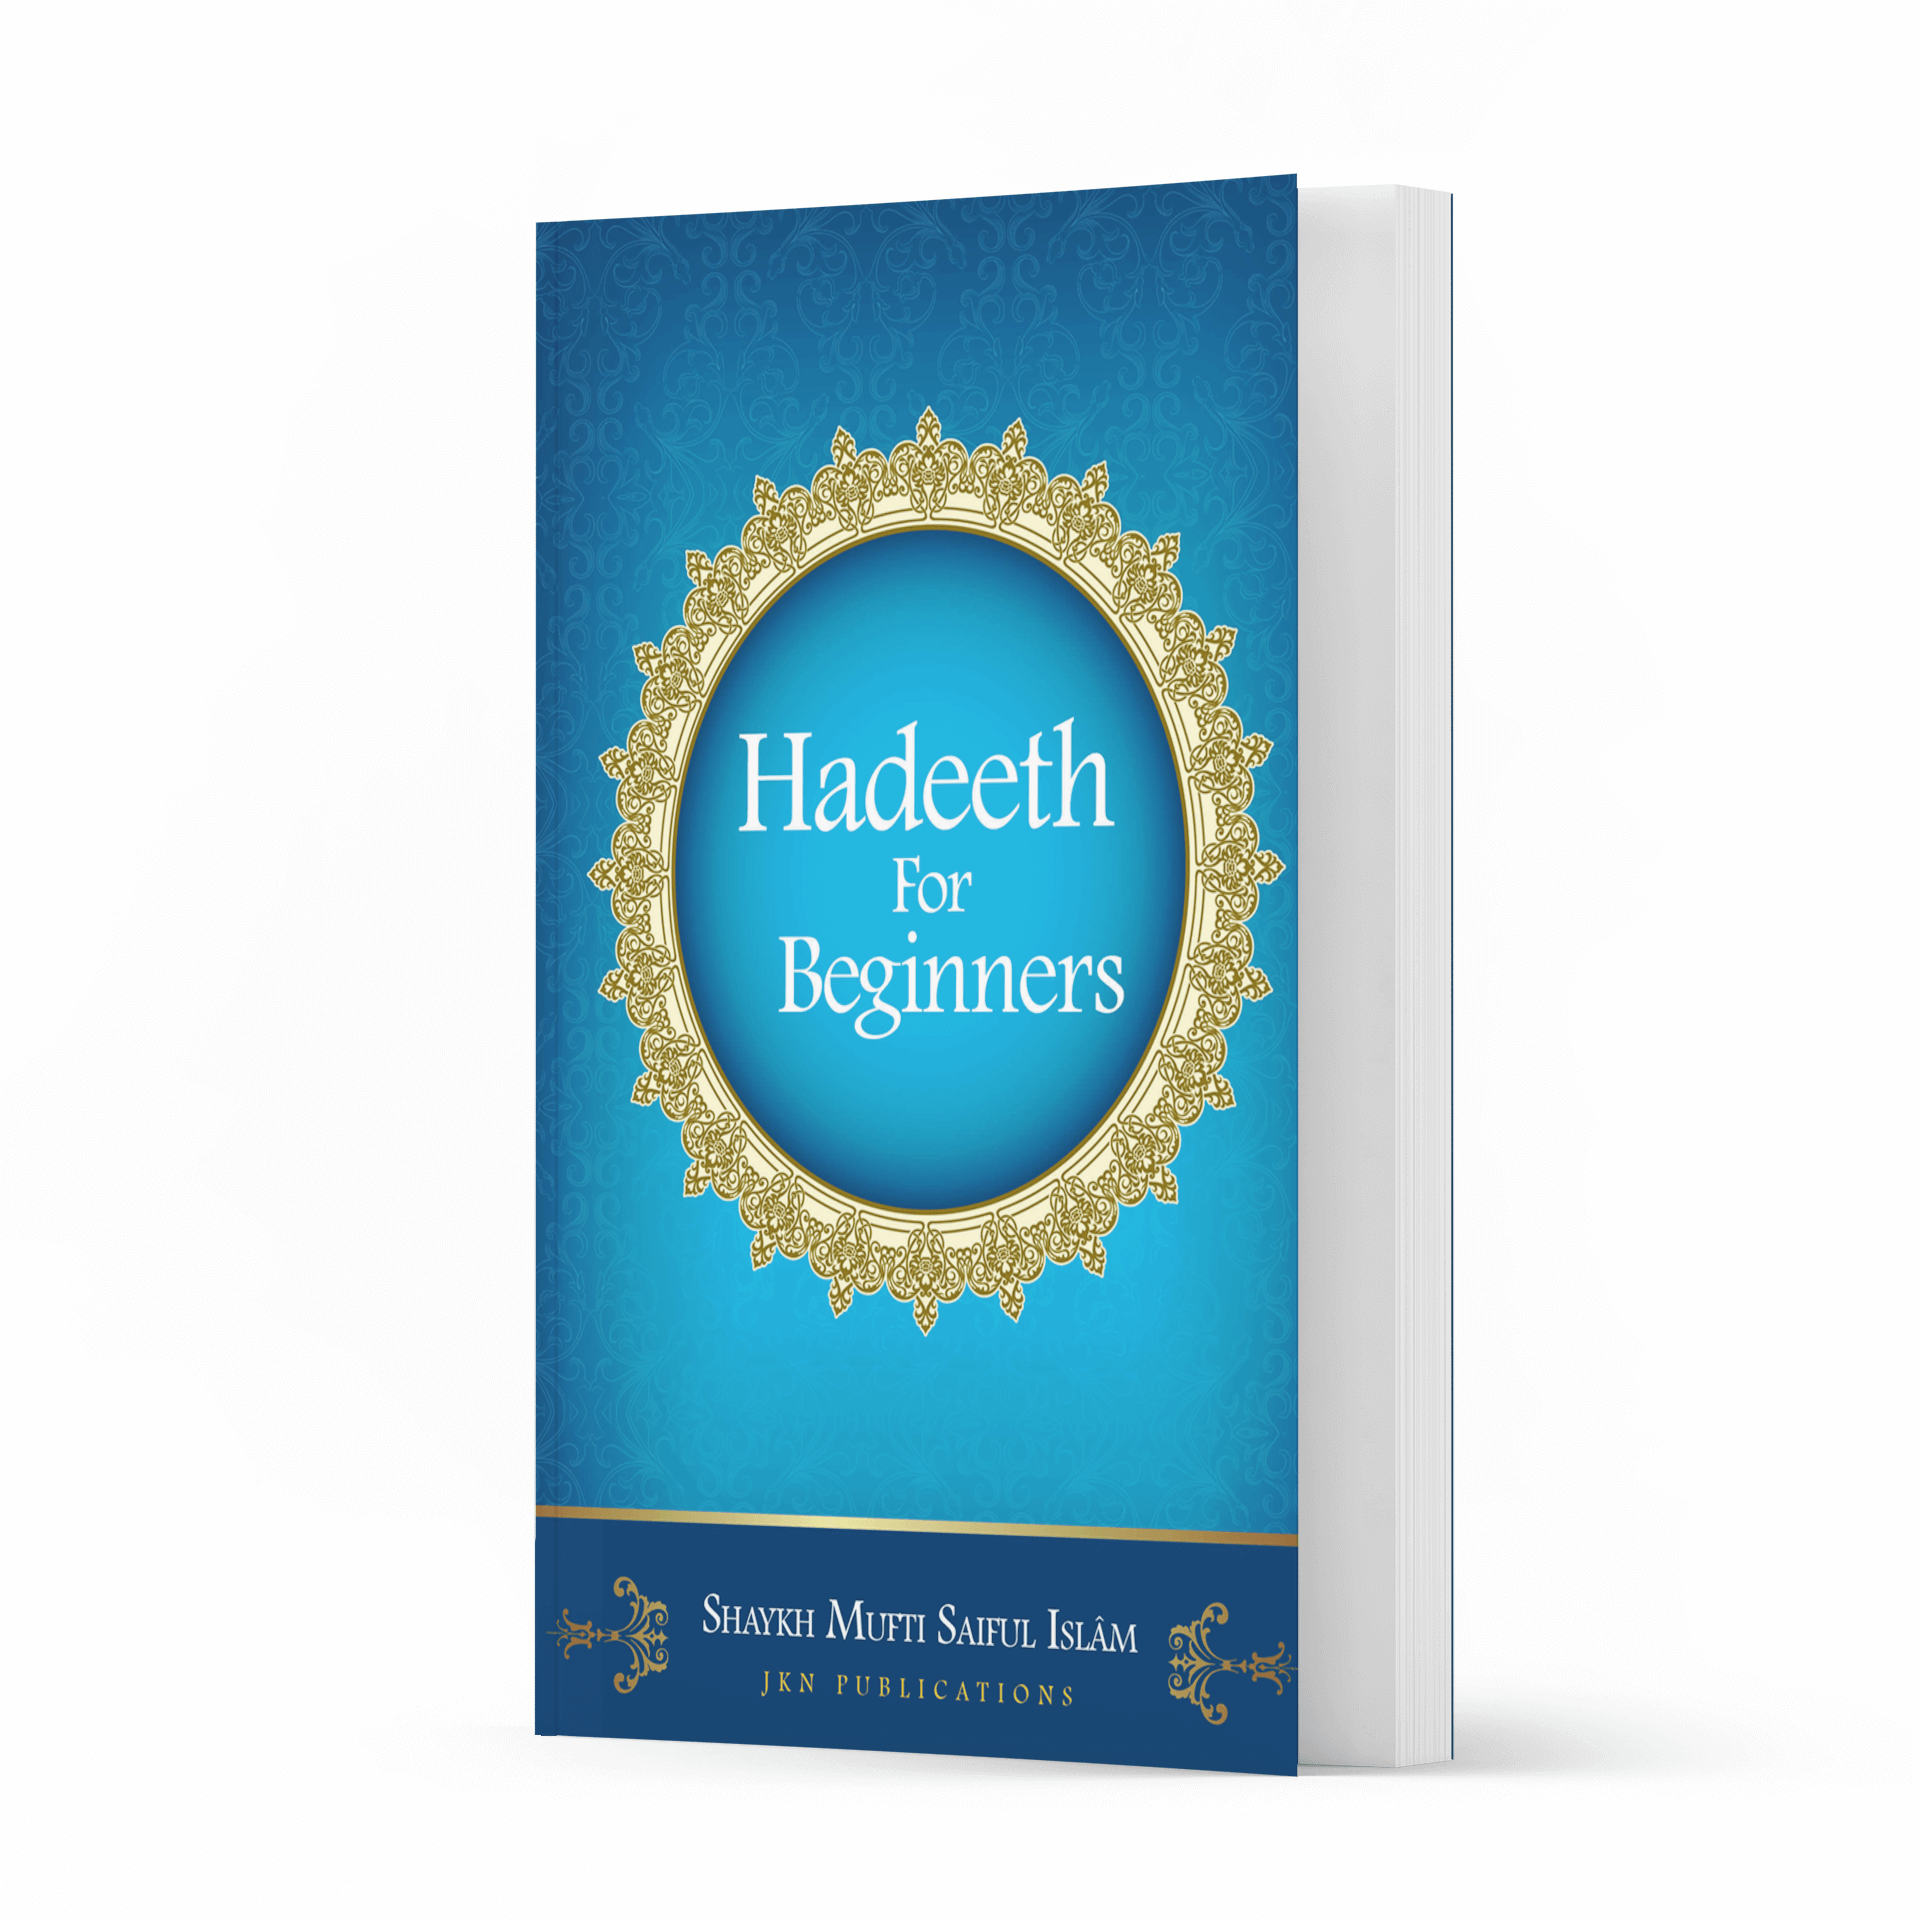 Hadeeth For Beginners